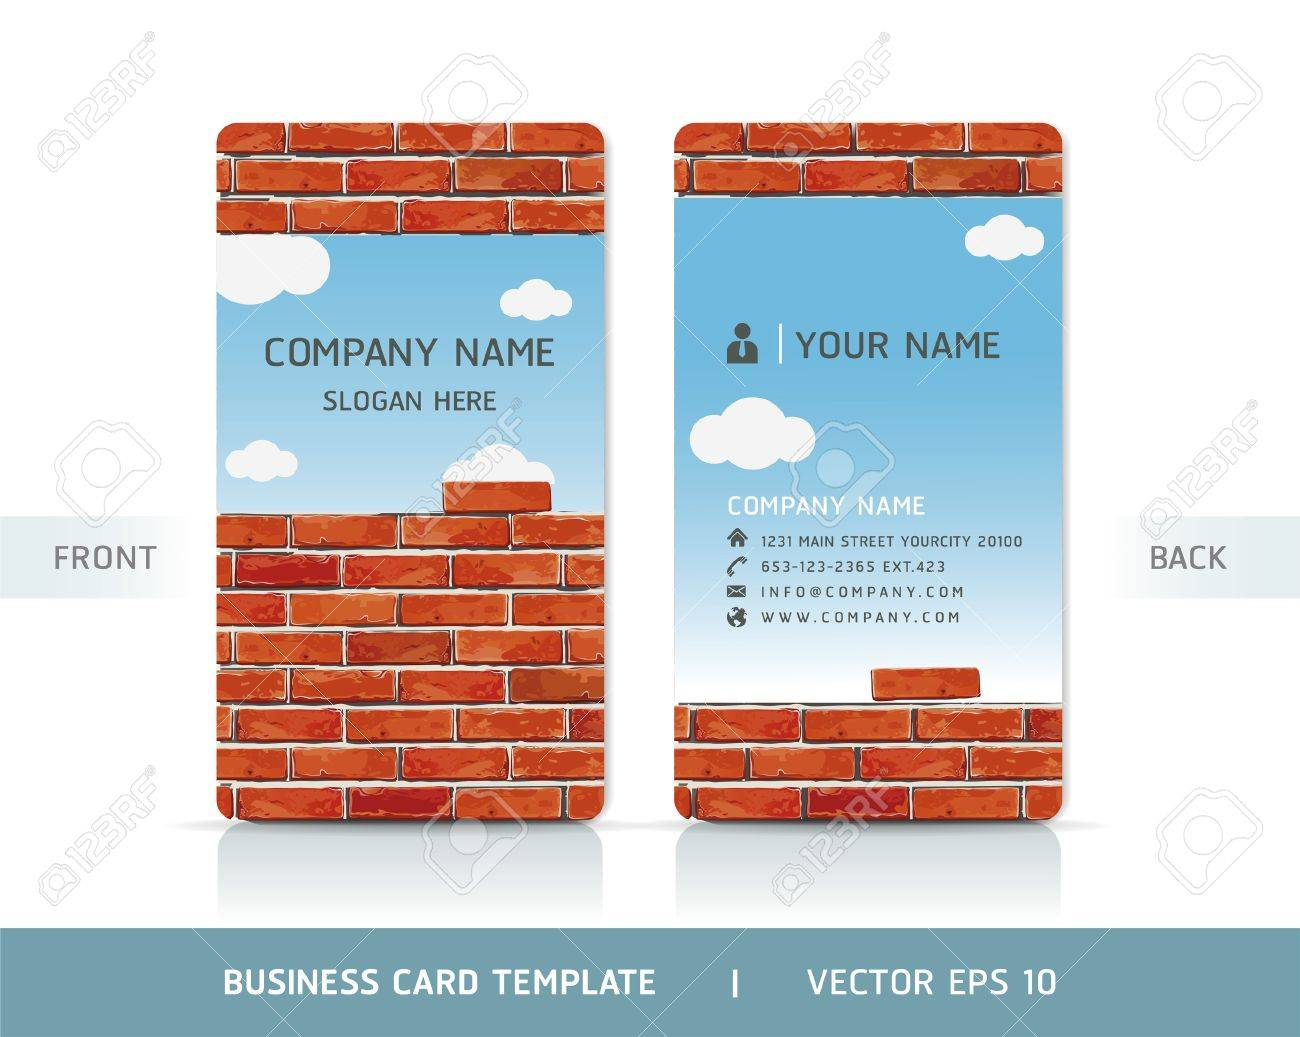 Red Brick Wall Business Card . Vector illustration. Stock Vector - 18759392